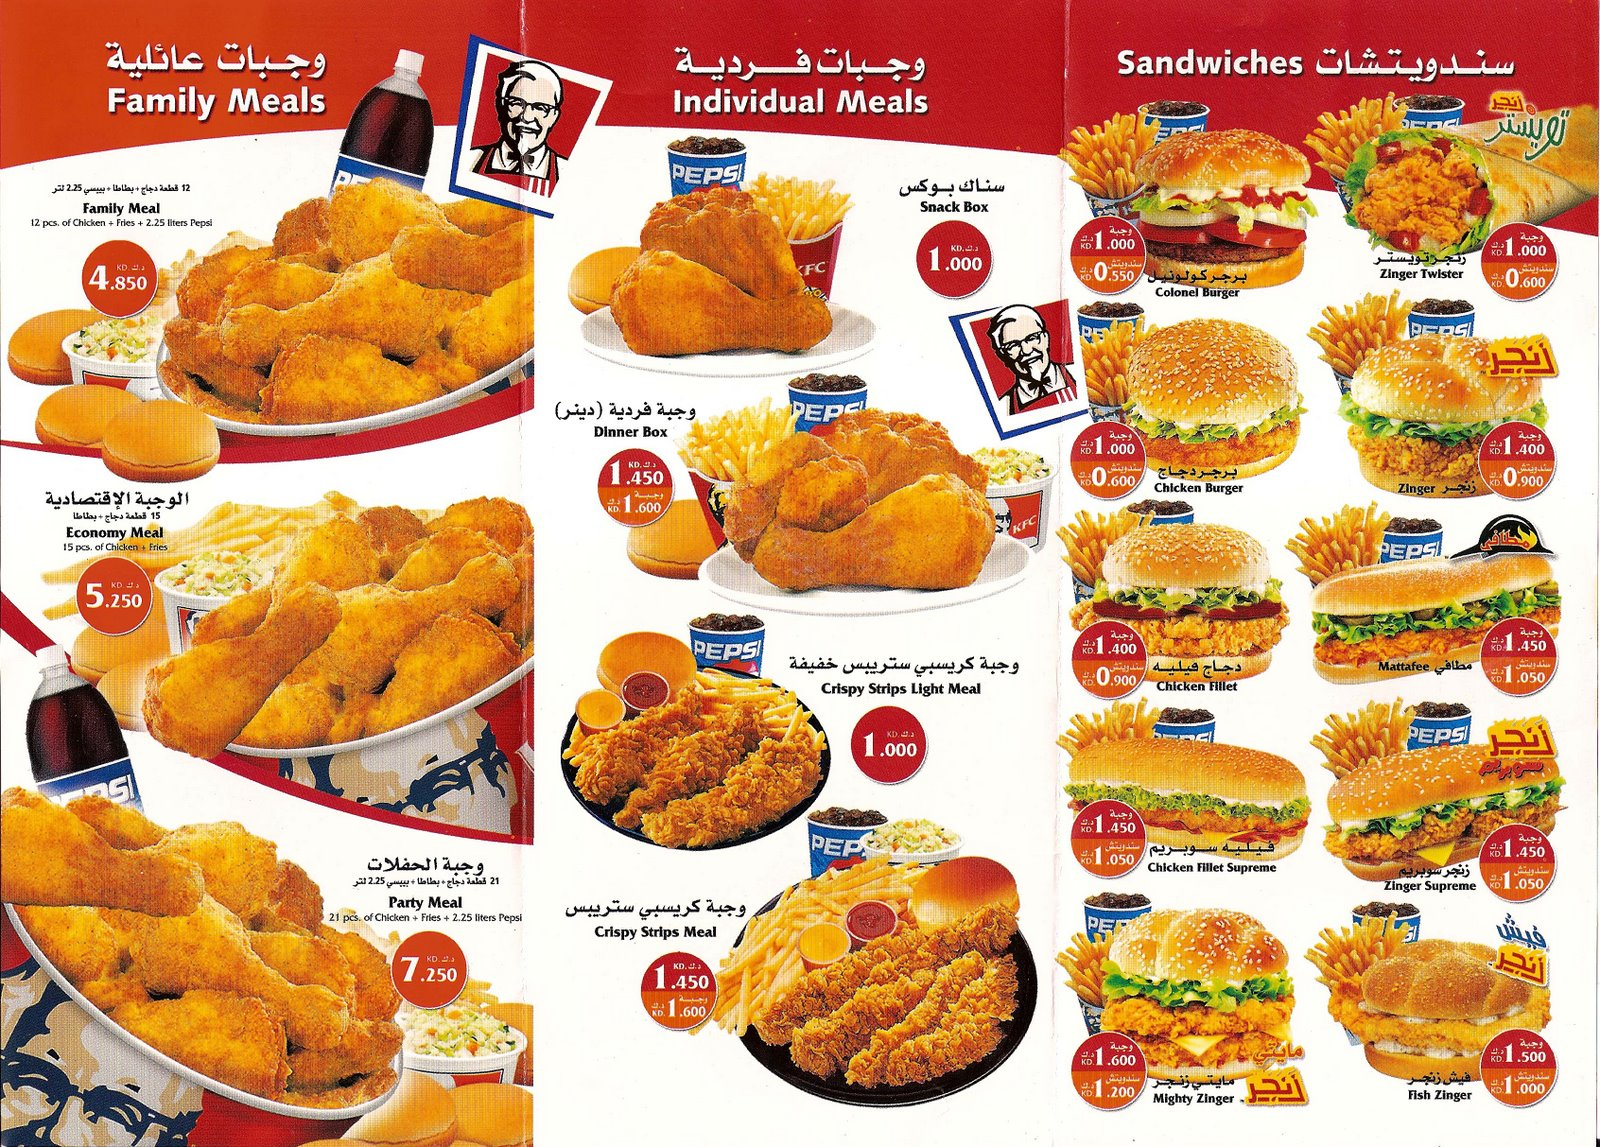 kfc chicken menu - Video Search Engine at Search.com - photo#4